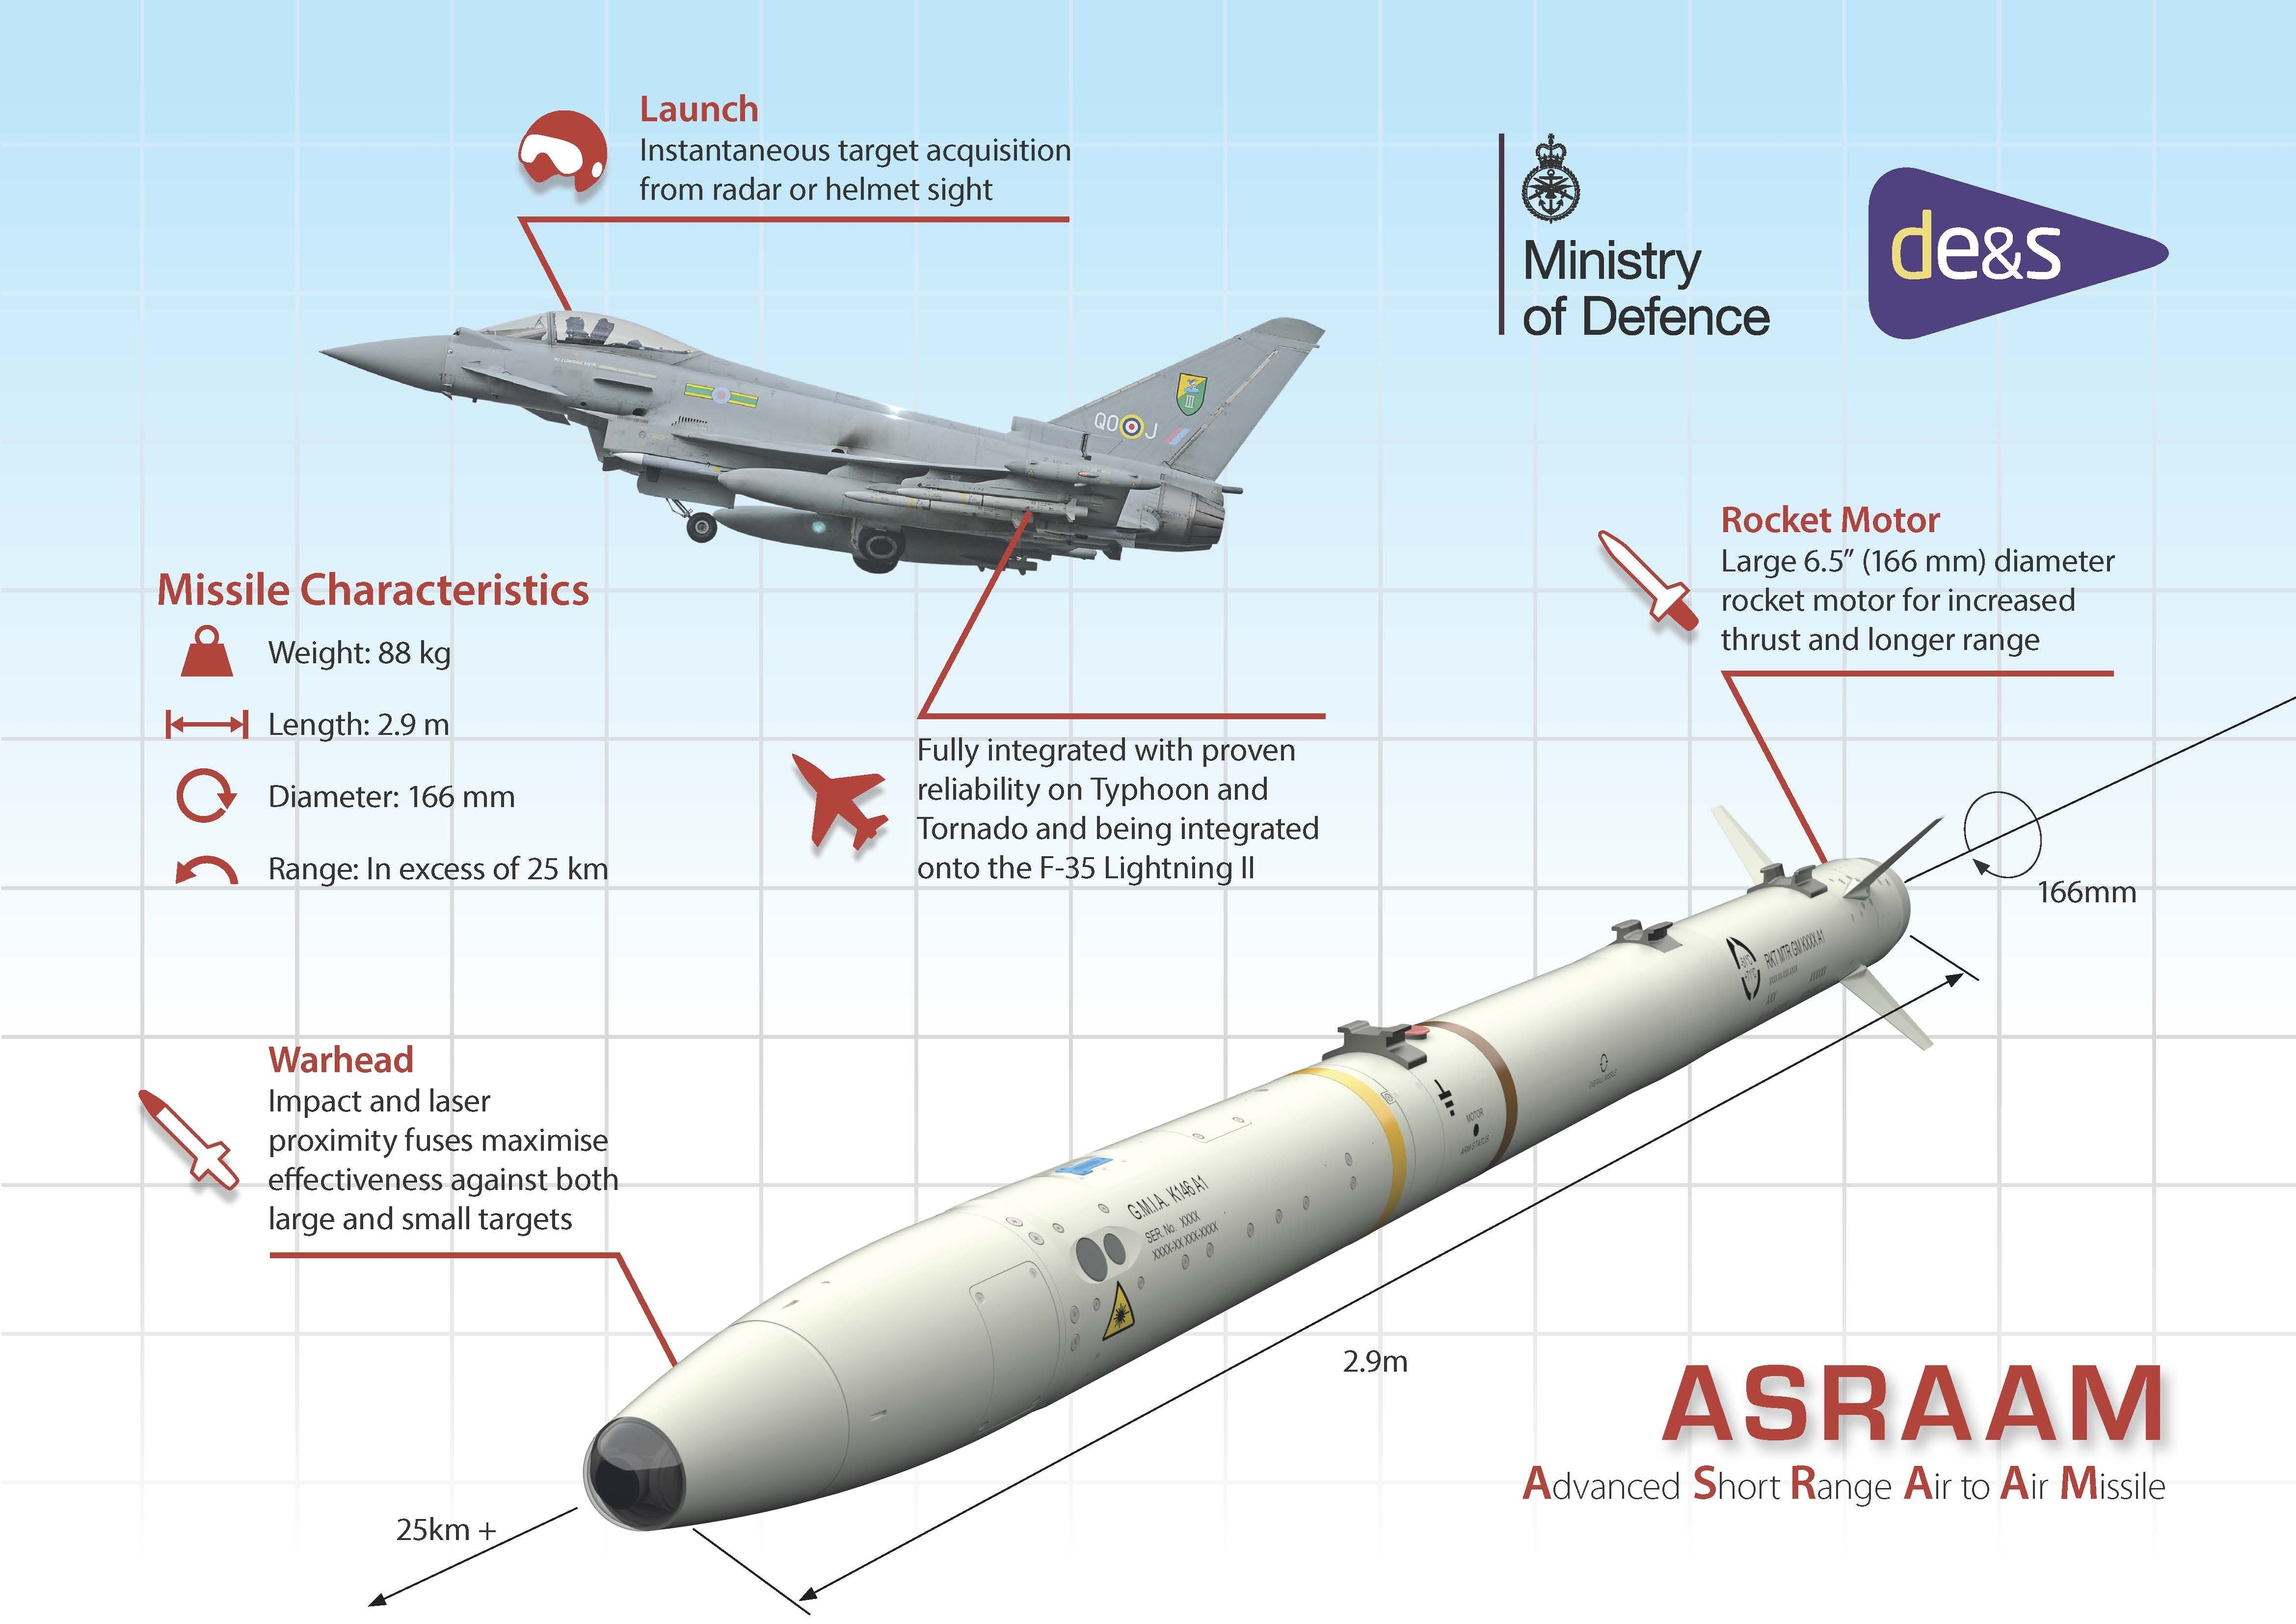 Infographic of the ASRAAM missile. The Ministry of Defence (MOD) has awarded a contract worth around £184 million to ensure the UK's new supersonic stealth combat aircraft will continue to be equipped with the latest air-to-air missile. Designed and manufactured in the UK, ASRAAM is an advanced heat-seeking weapon which will give Royal Air Force (RAF) and Royal Navy F-35B Lightning II pilots, operating from land and the UK's two new aircraft carriers, the ability to defeat current and future air adversaries. The new contract will see MBDA manufacture an additional stockpile of an updated version of the weapon, allowing F-35 combat jets to use the missile beyond 2022. Work to integrate the new missile onto the UK's F-35 fleet will be carried out under a separate contract.